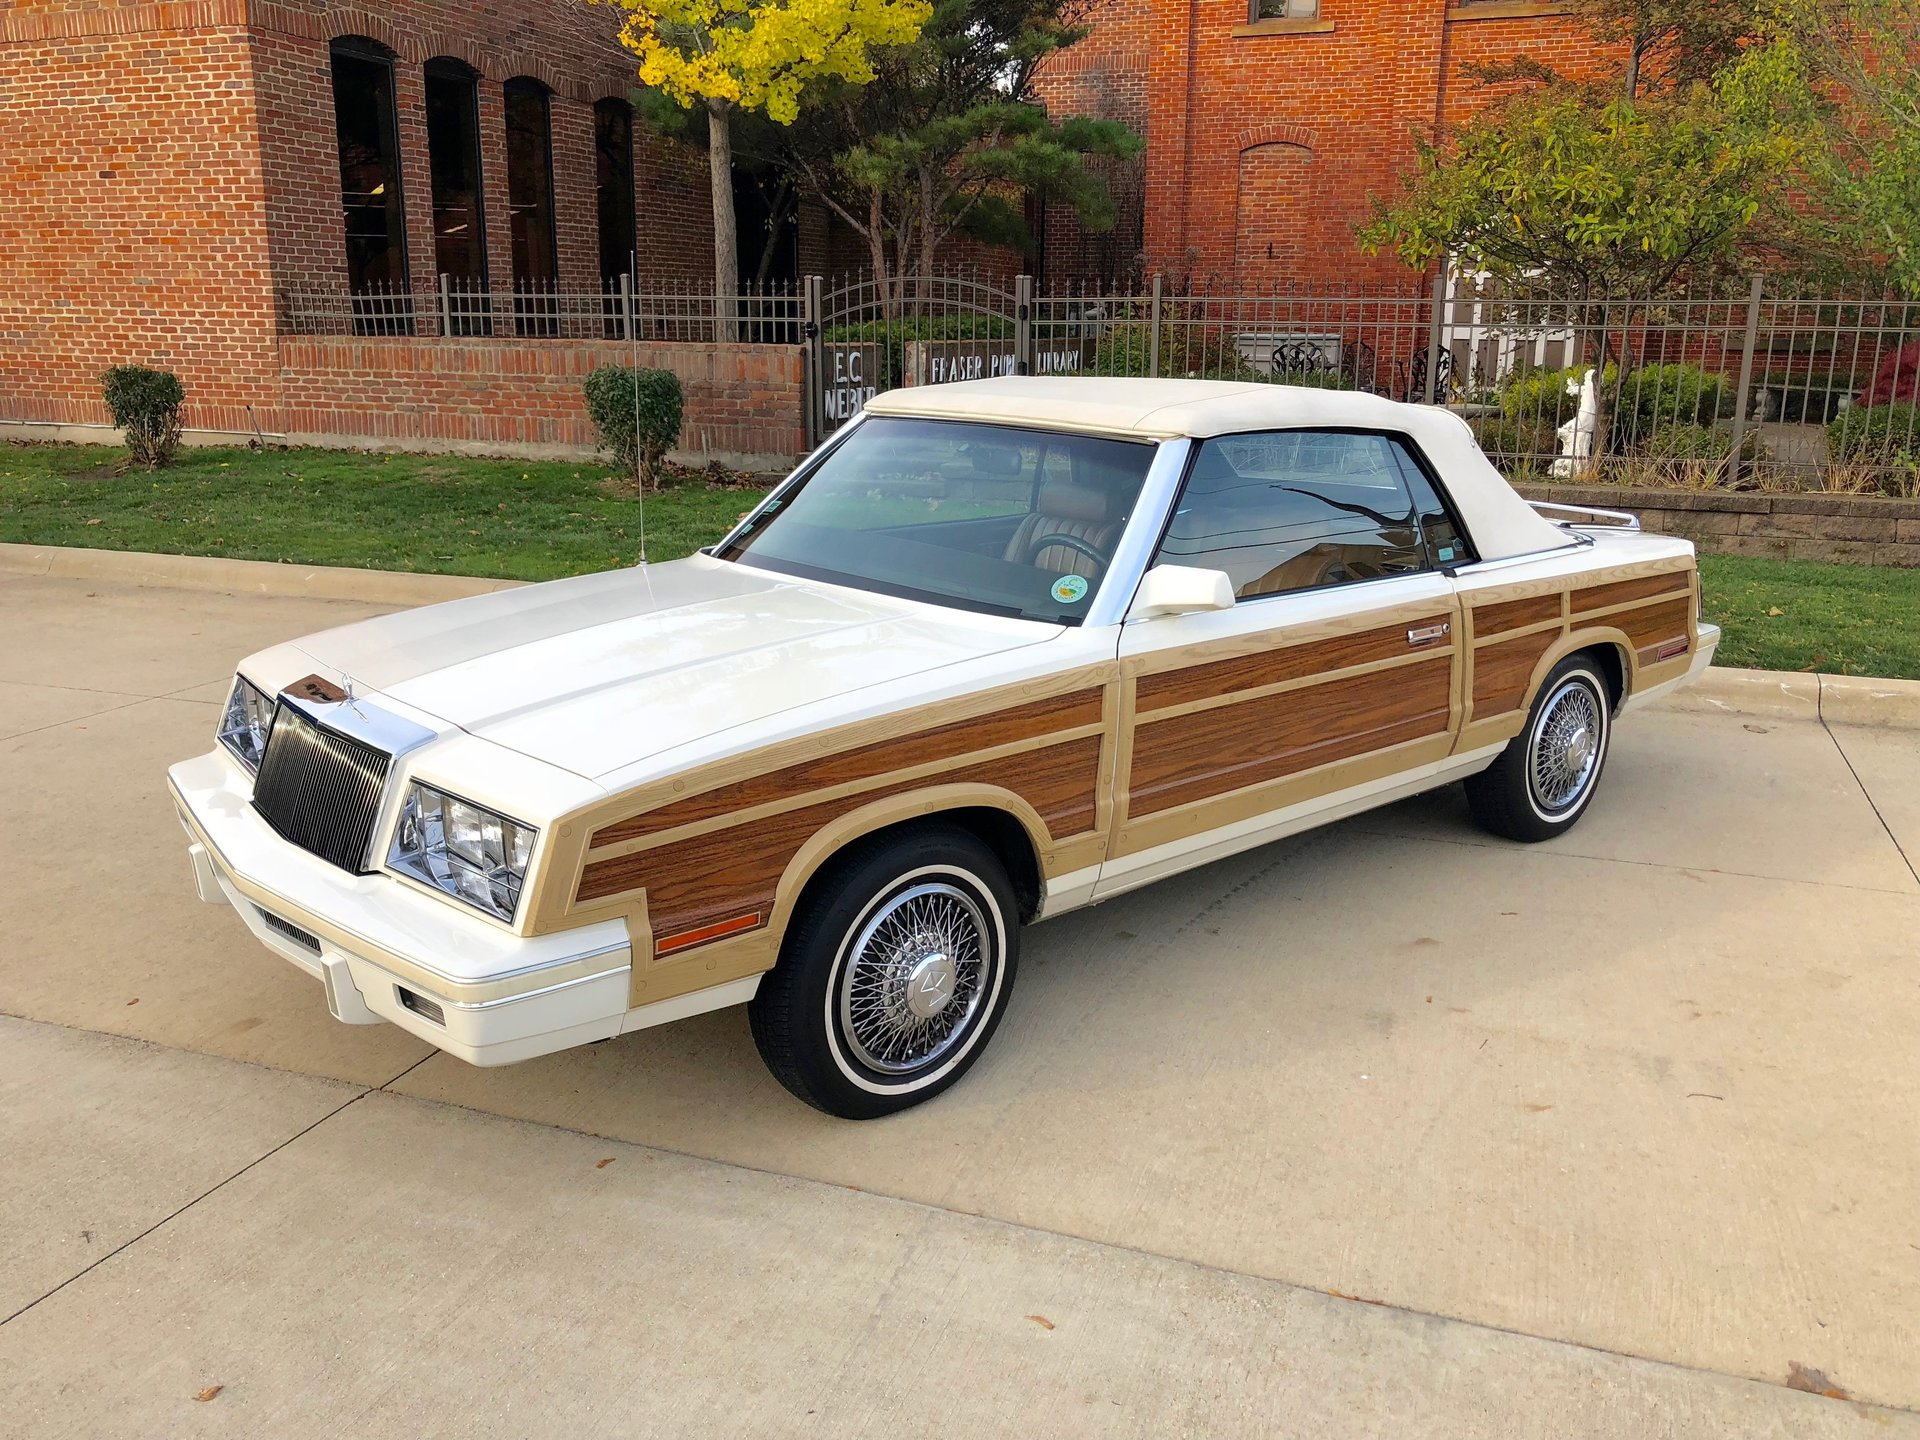 820485054fe3 hd 1984 chrysler town and country